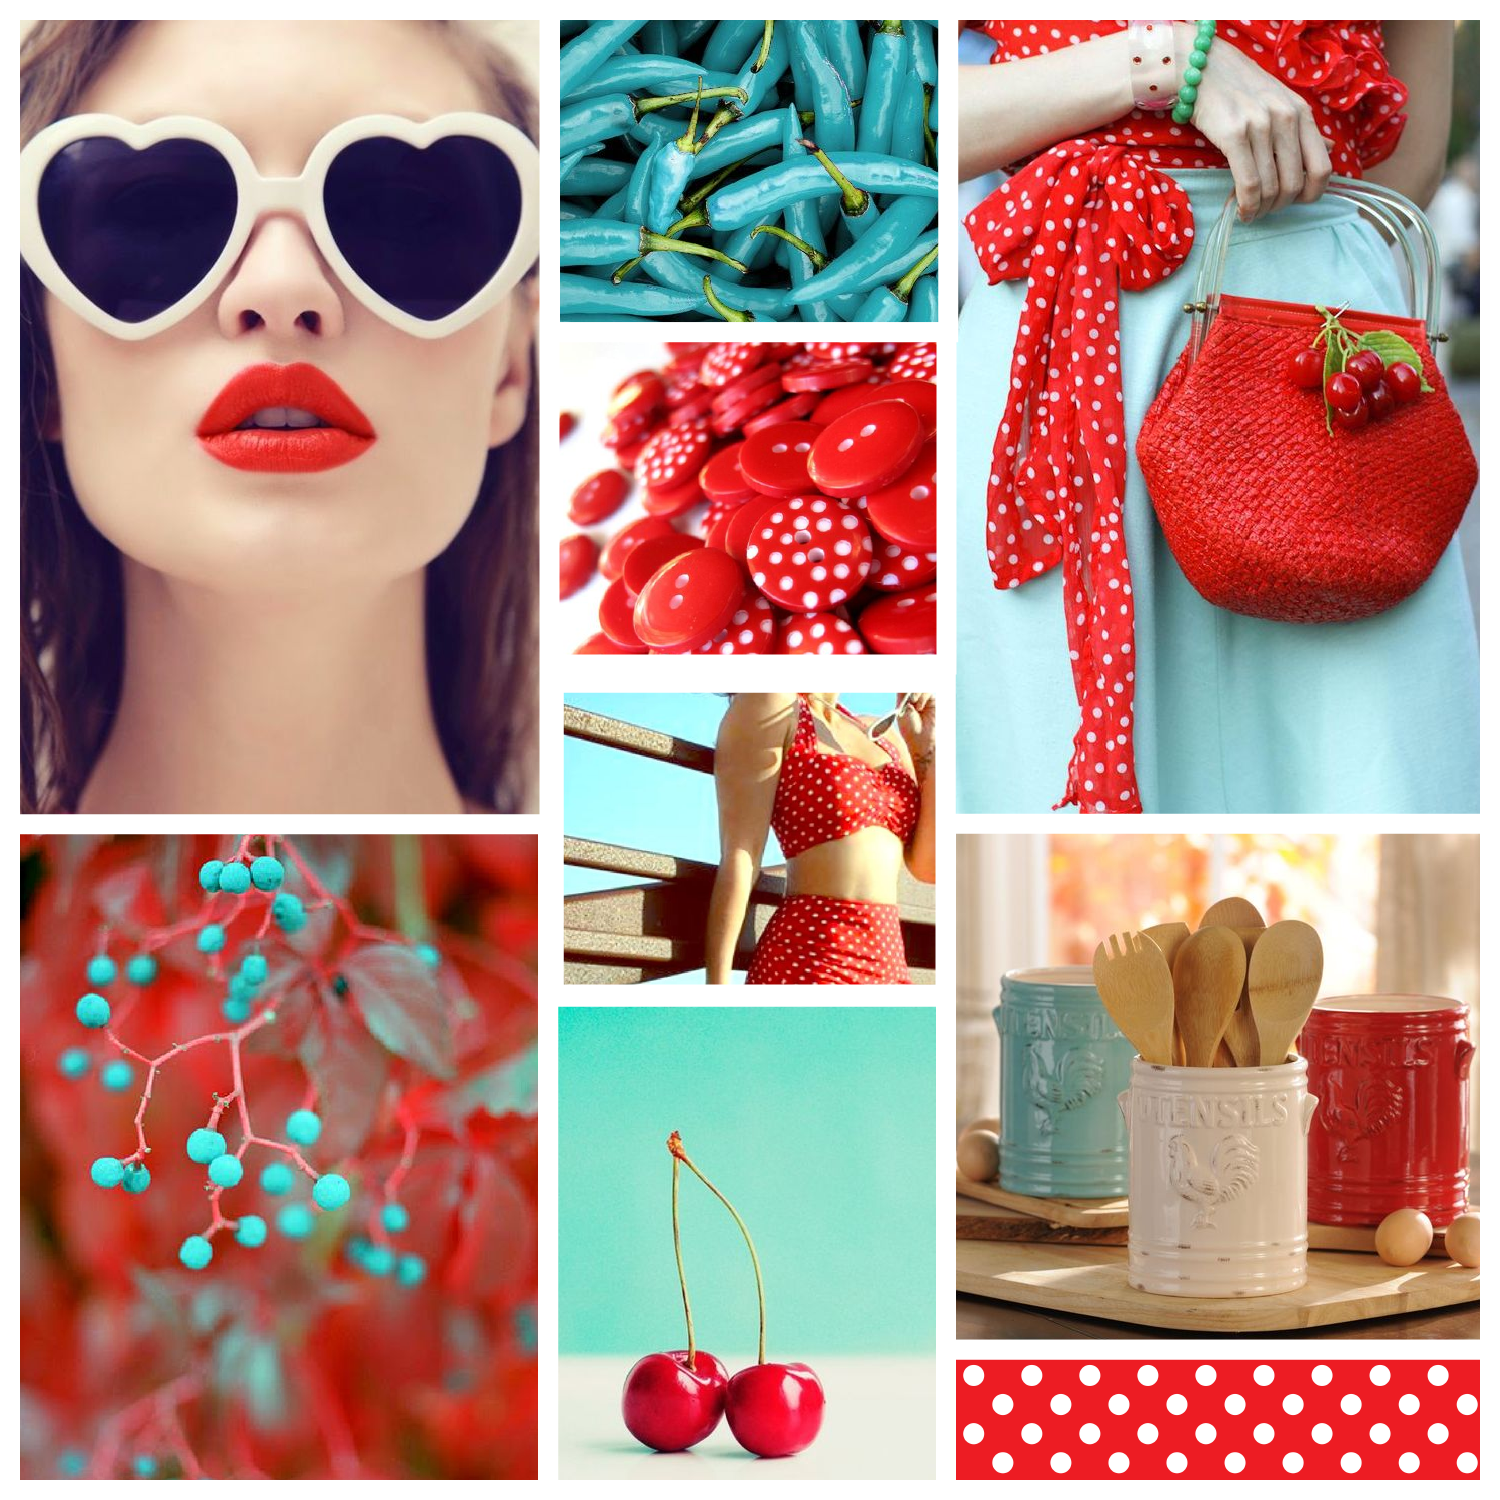 Moodboard Monday #06 - Turquoise & Red - www.garlicfriday.com